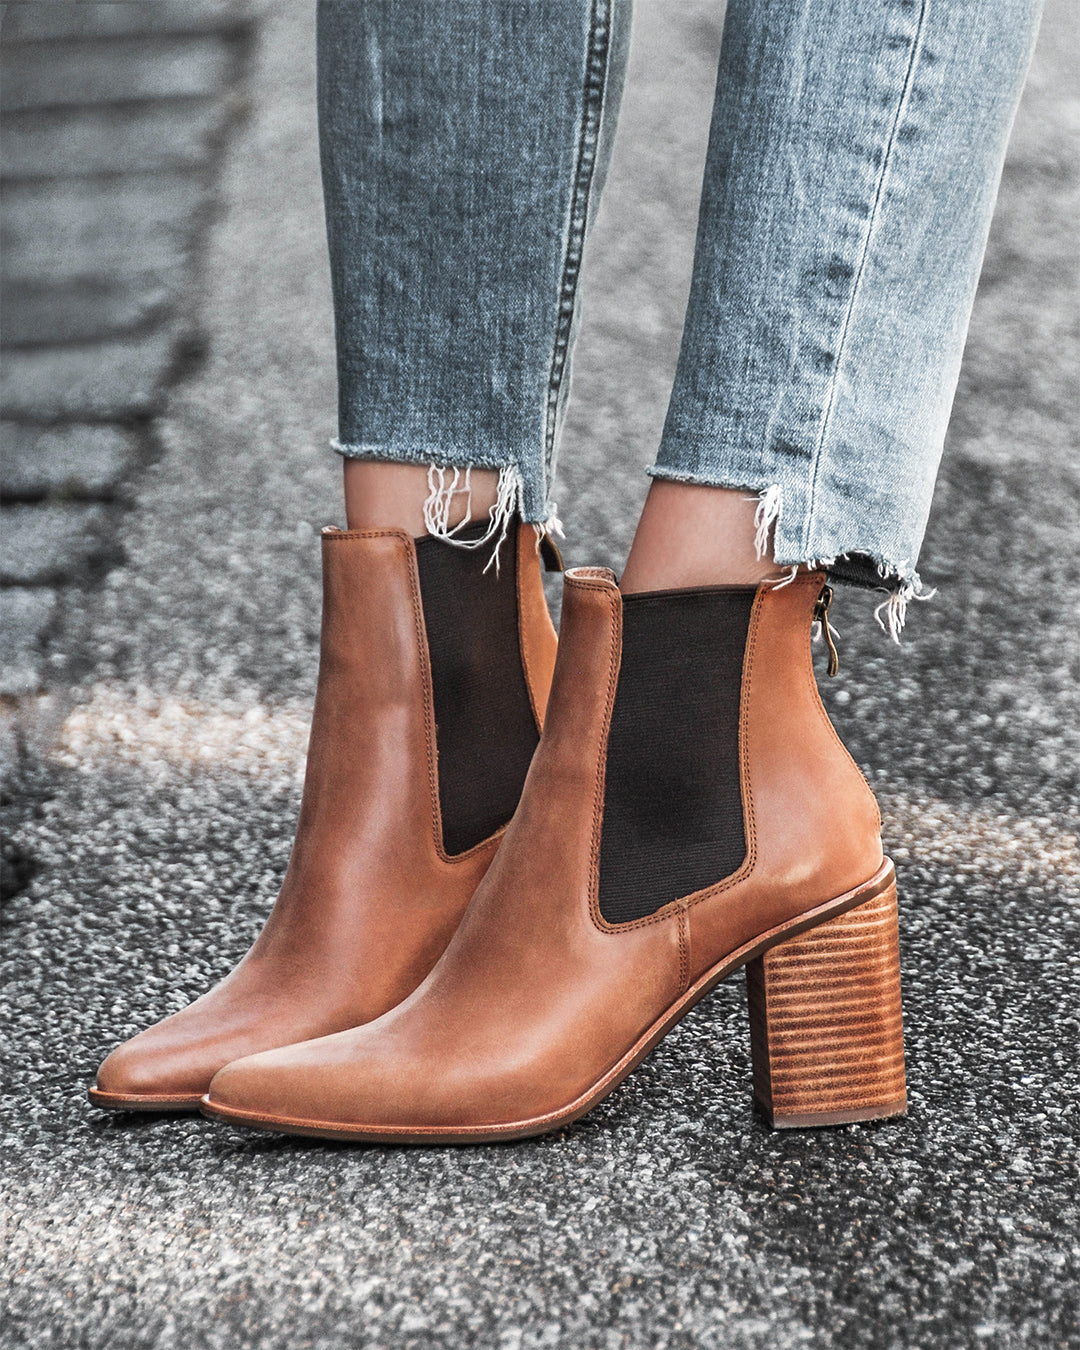 LOVER HIGH ANKLE BOOTS CHOCOLATE LEATHER